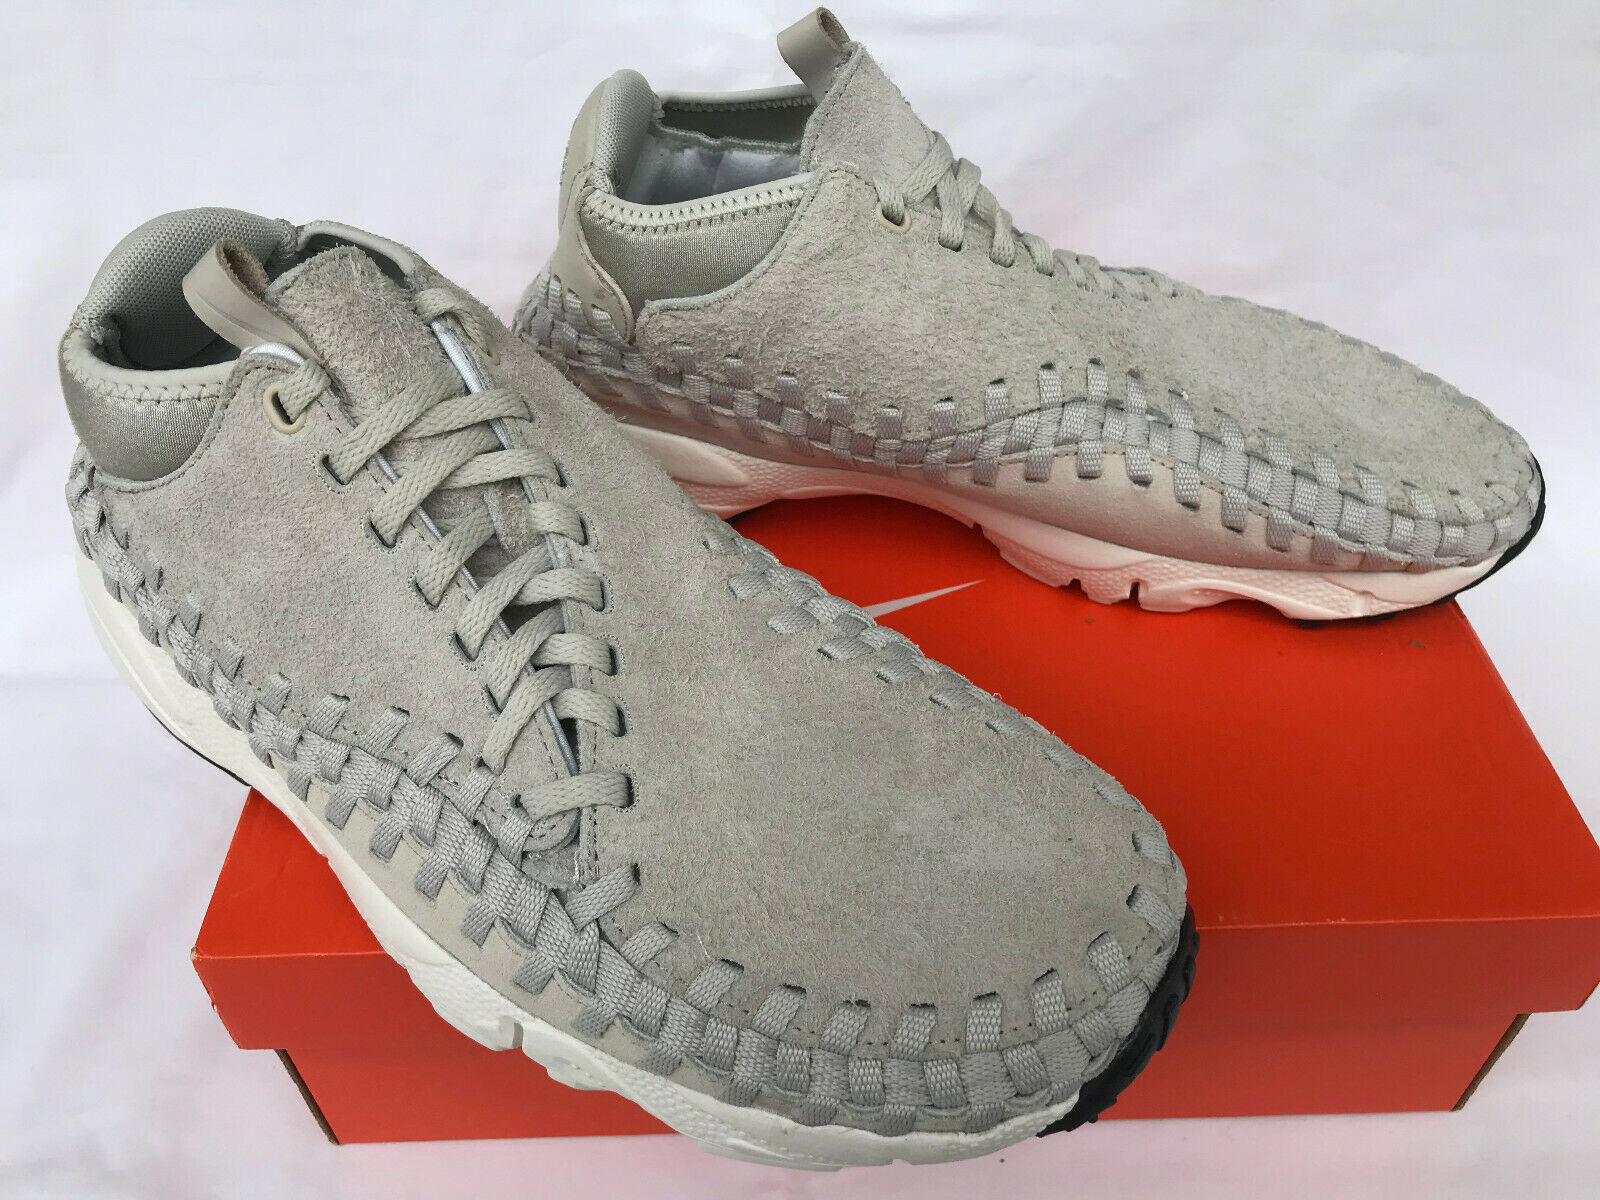 Nike Air Footscape Woven Chukka QS 913929-002 Suede NSW Sneaker shoes Men's 11.5